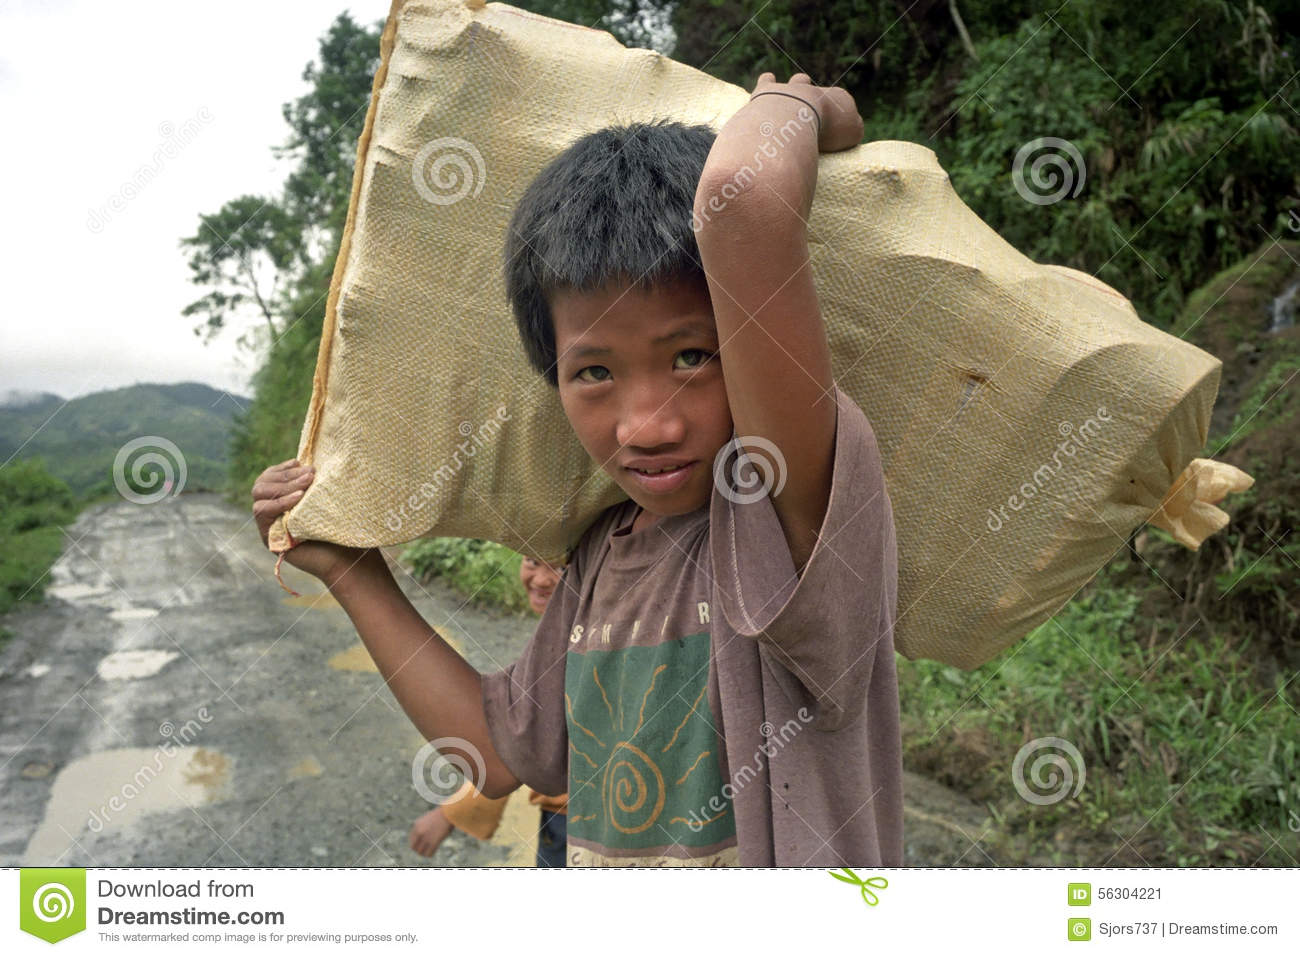 Portrait of smiling, working, Filipino boy